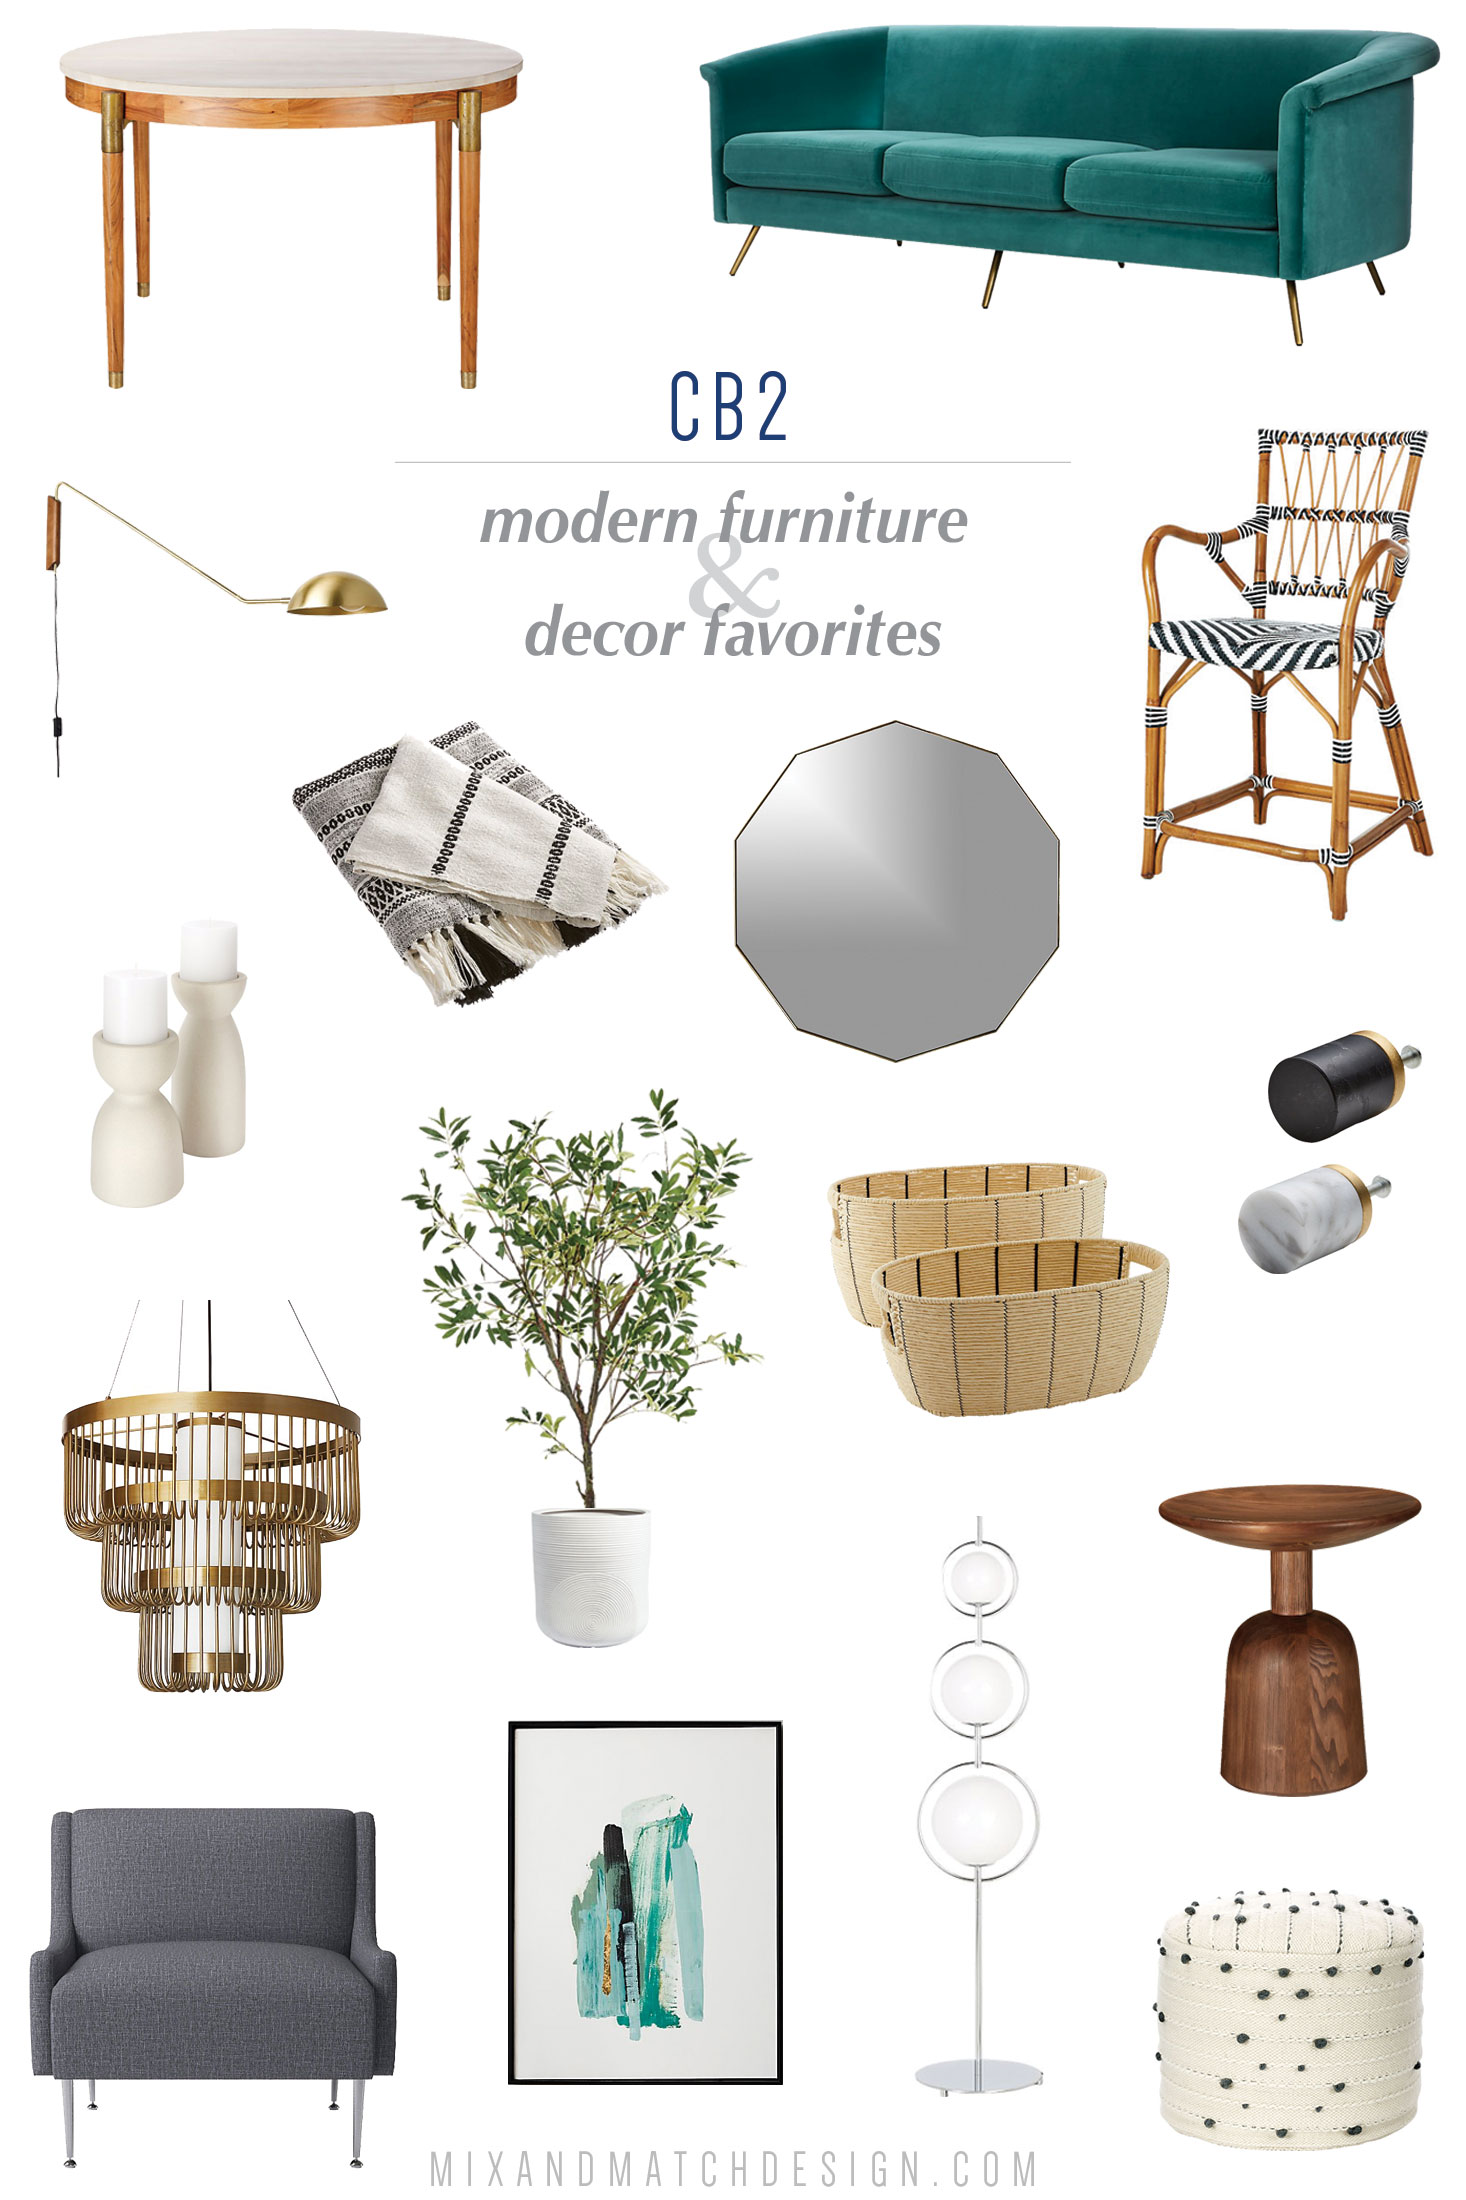 CB2 is one of my favorite places to shop for affordable modern home furniture, decor, and accessories, and I've rounded up a bunch of my favorites for you! In addition to modern decor, they also mix in styles ranging from boho to glam to tribal - there's so much to love! // #designerfinds #interiordesign #homedecor #moderndecor